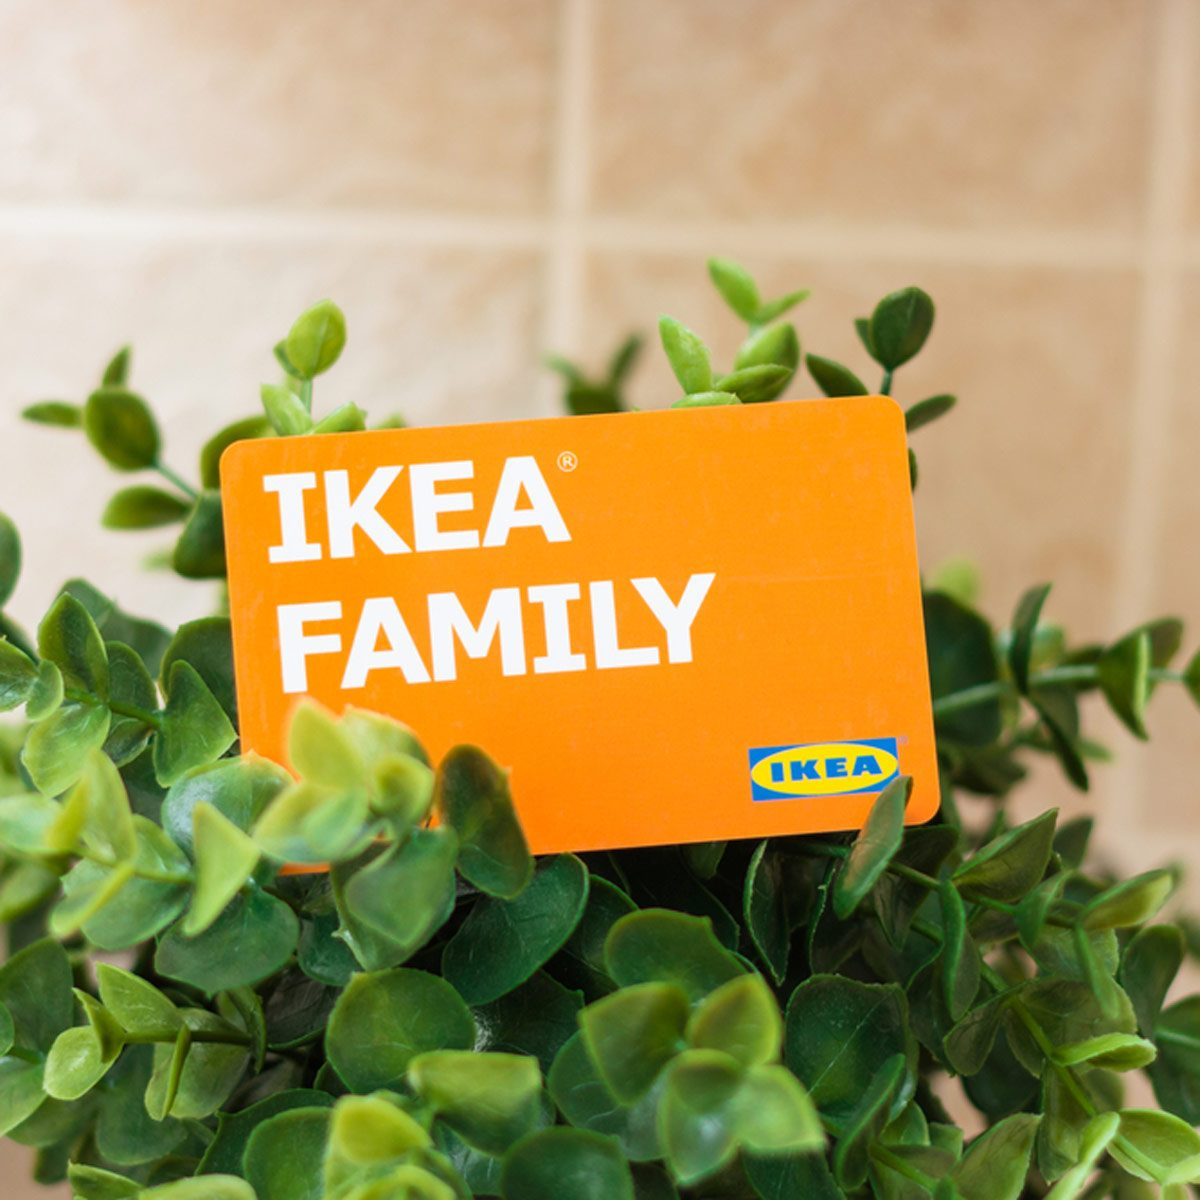 Ikea family membership card